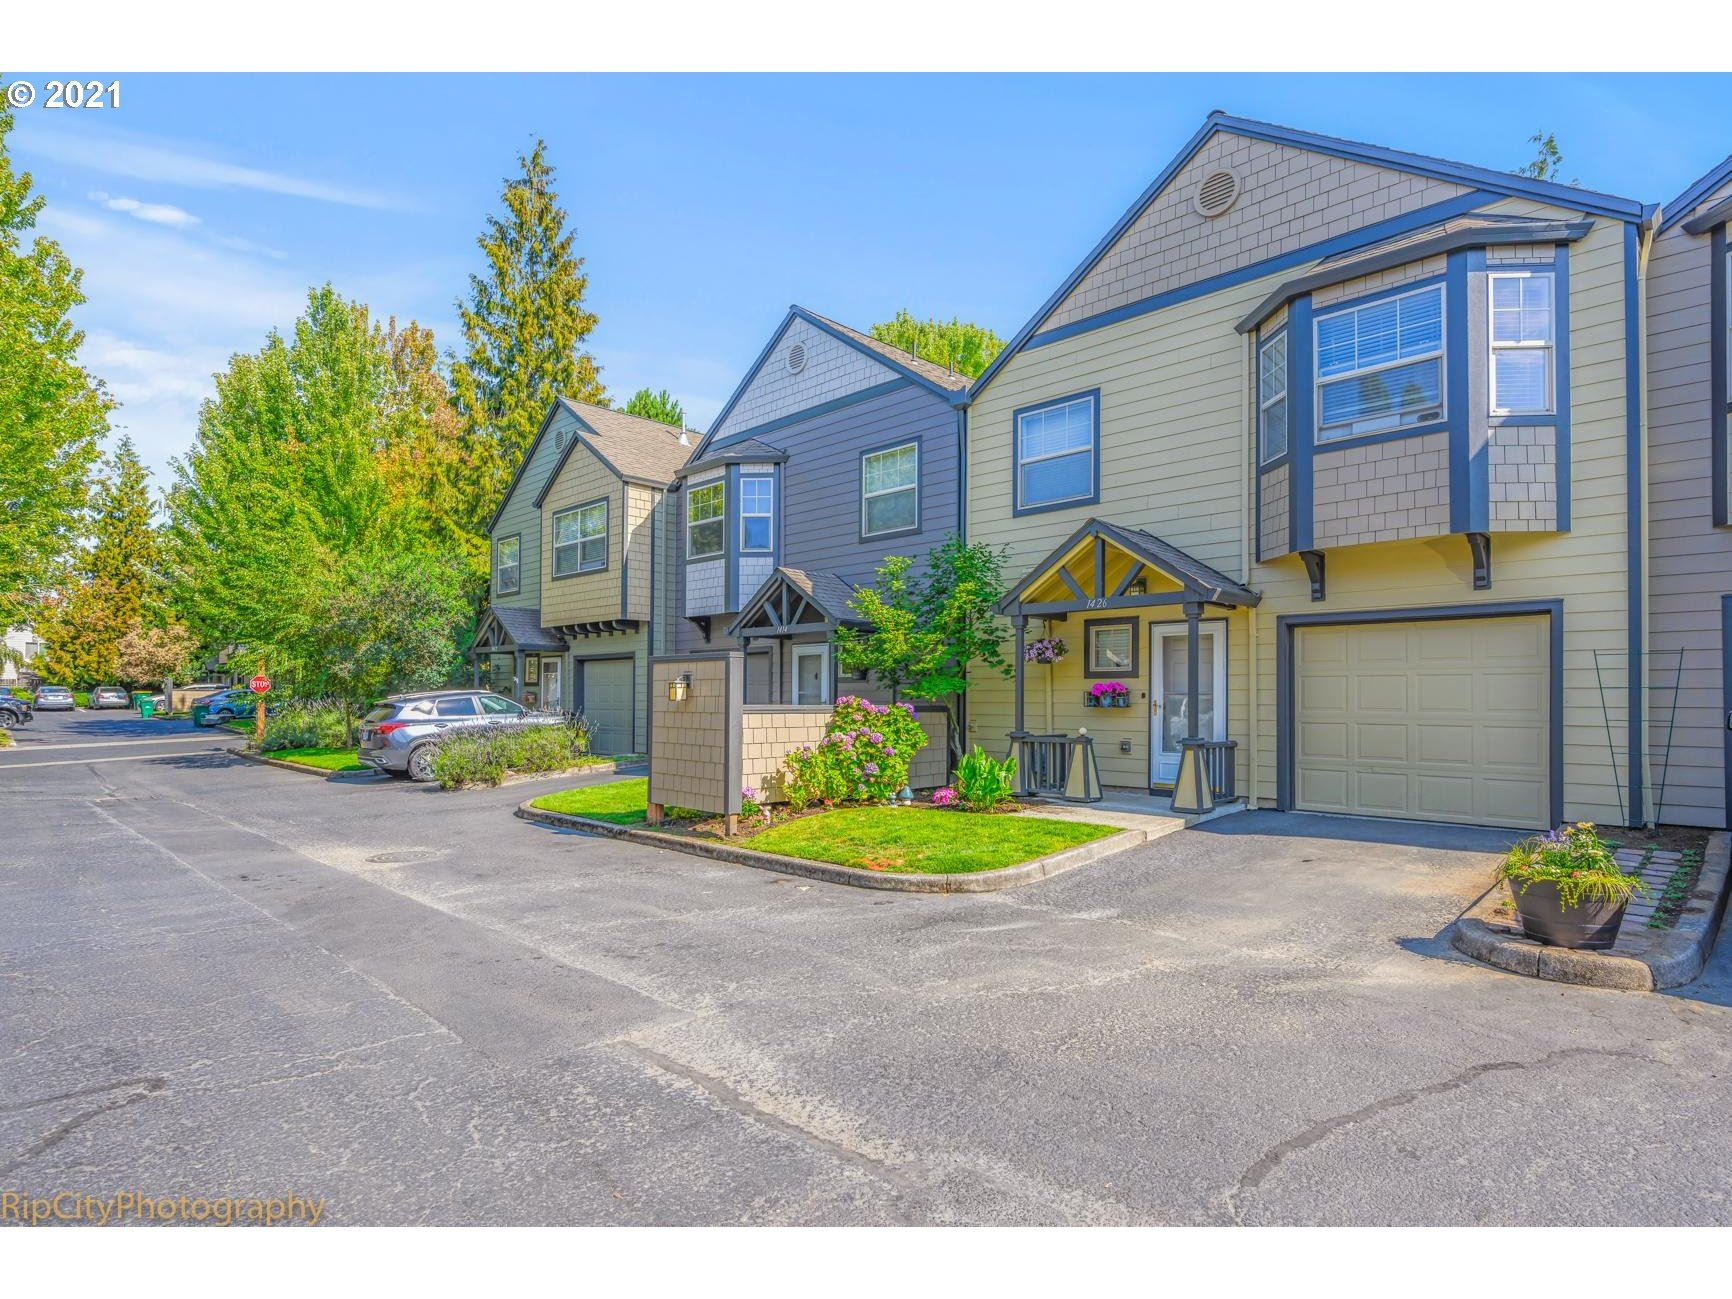 1426 SW EDGEFIELD MEADOWS CT, Troutdale, OR 97060 - MLS#: 21105933